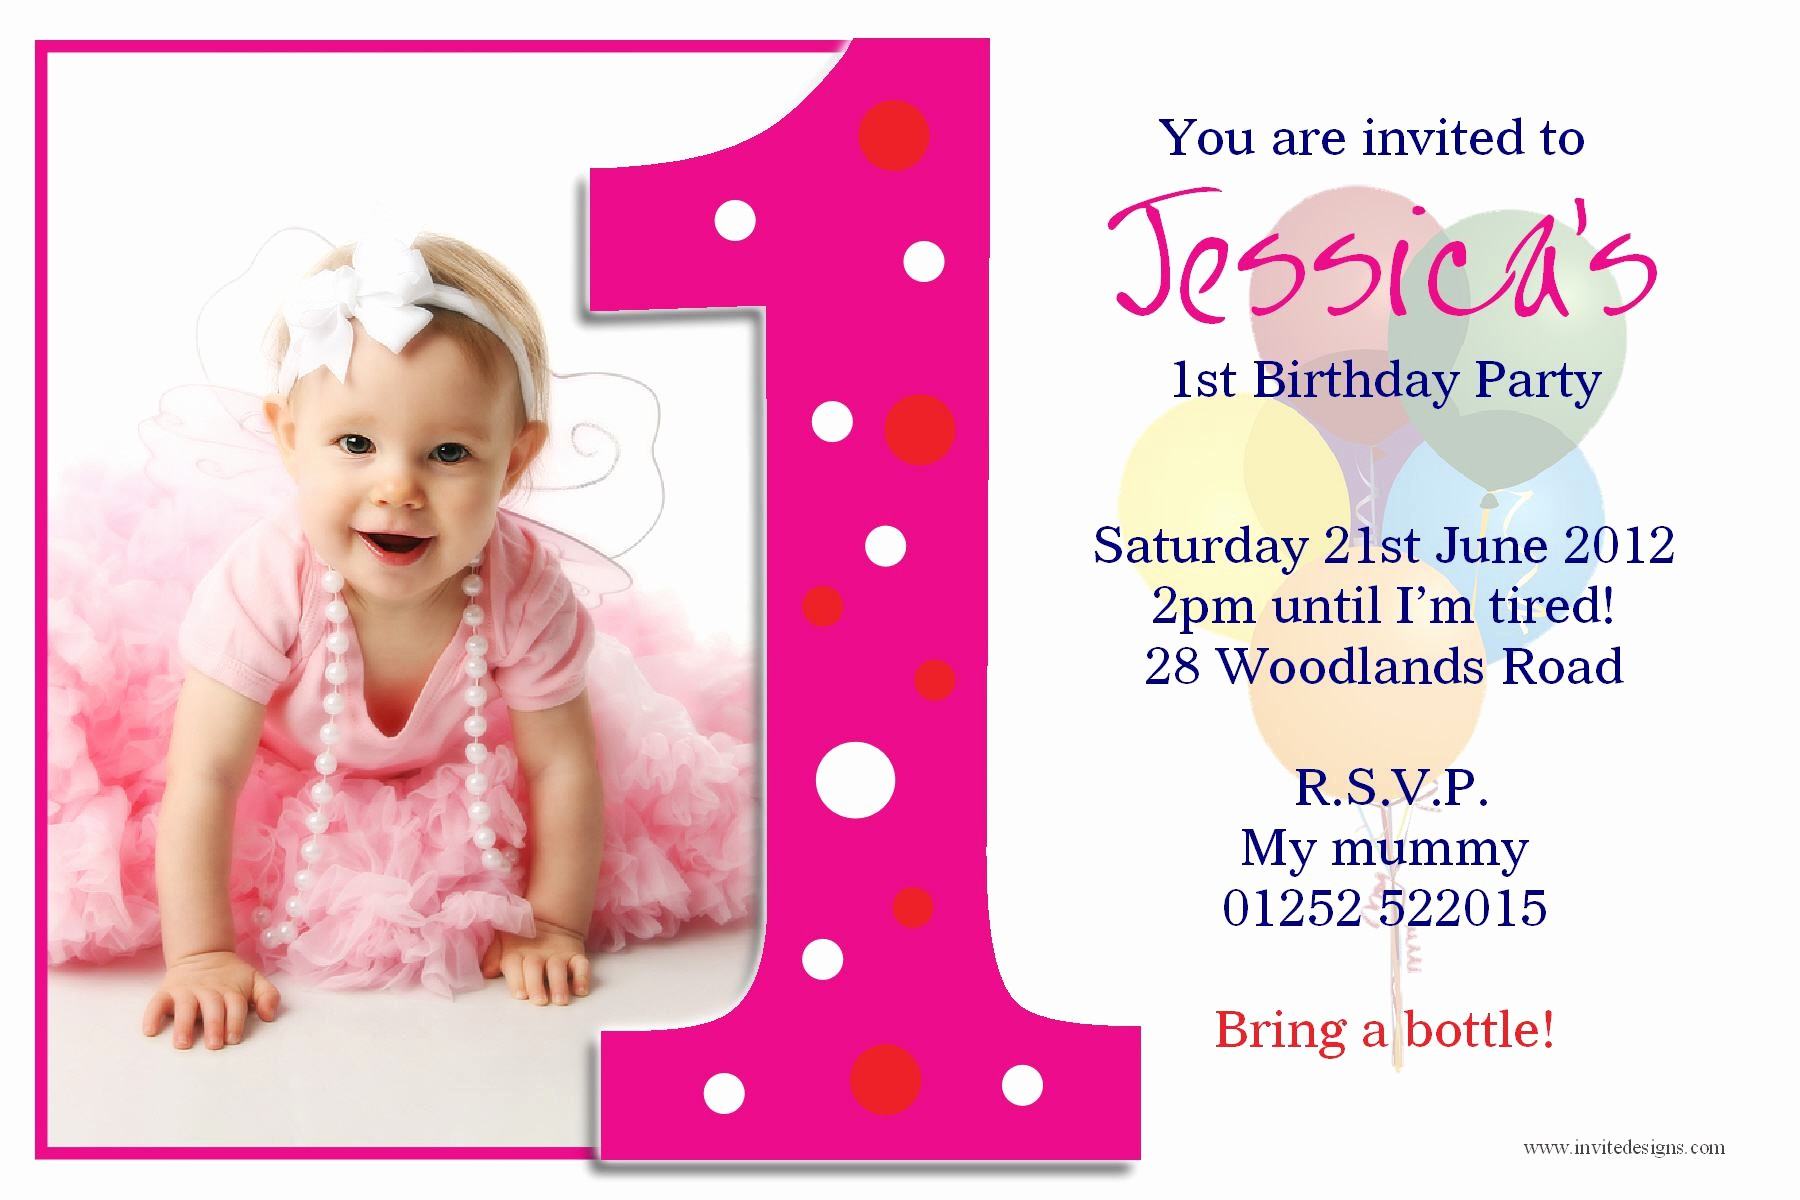 Birthday Card Template with Photo Luxury Birthday Invitation Card Birthday Invitation Card